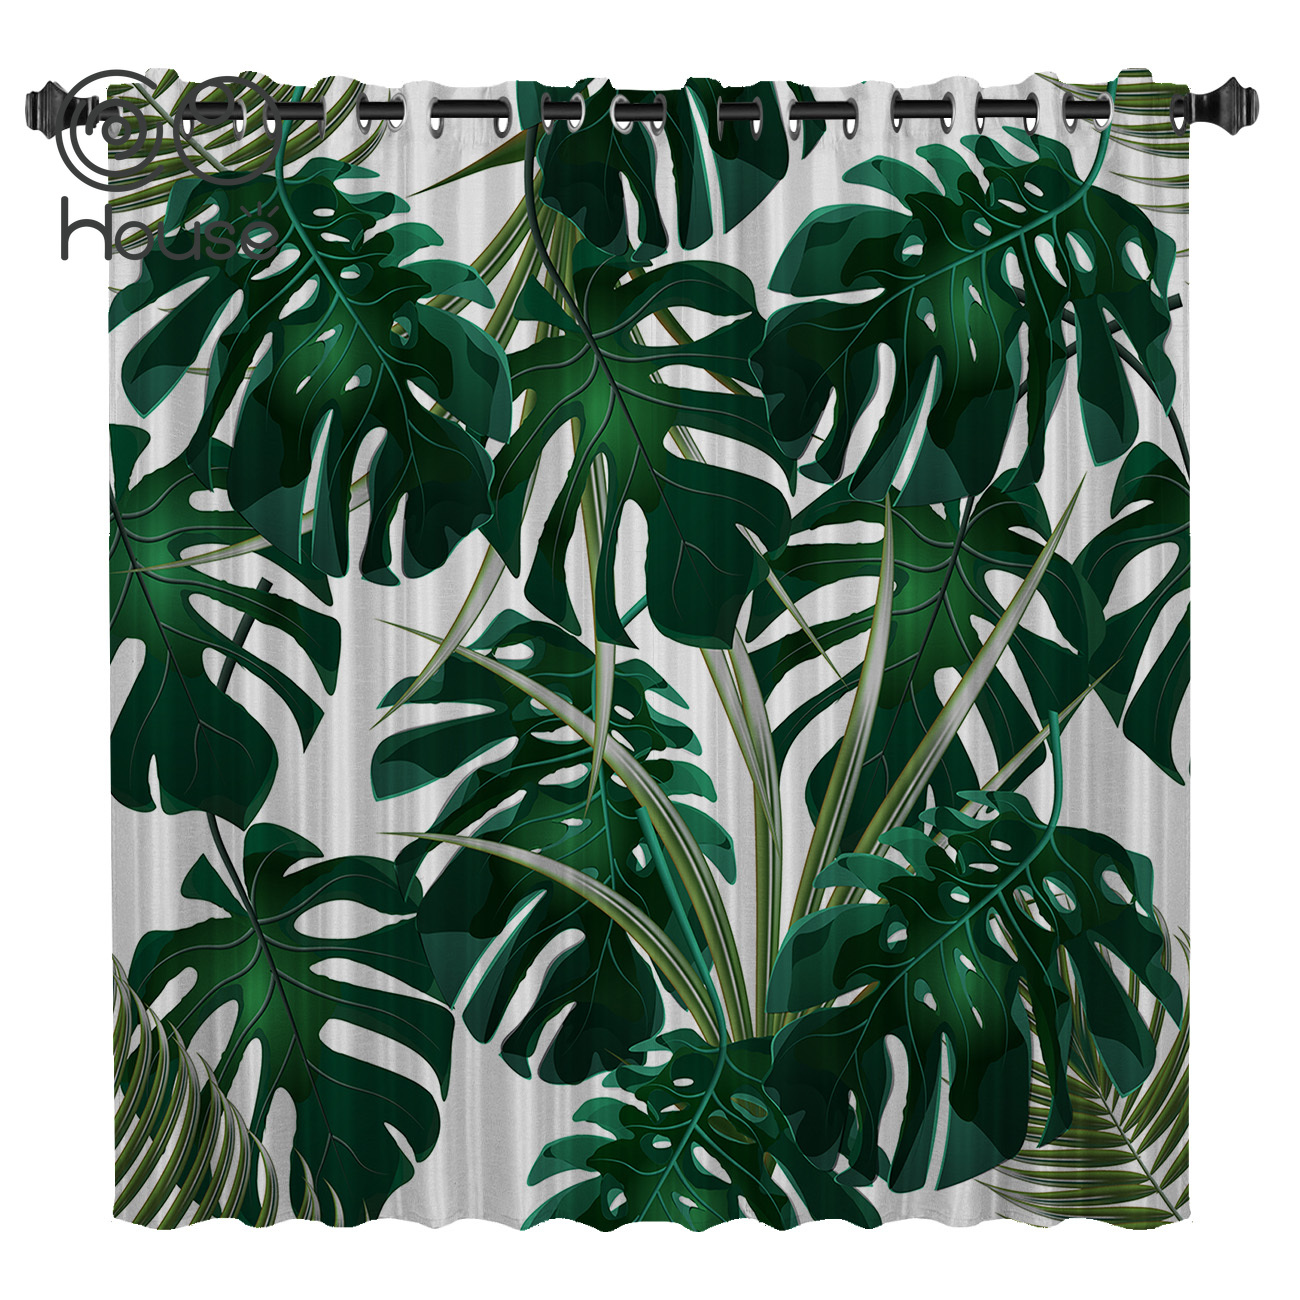 COCOHouse Tropical Leaves Window Curtains Dark Living Room Blackout Outdoor Bedroom Kitchen Drapes Kids Window Treatment Sets